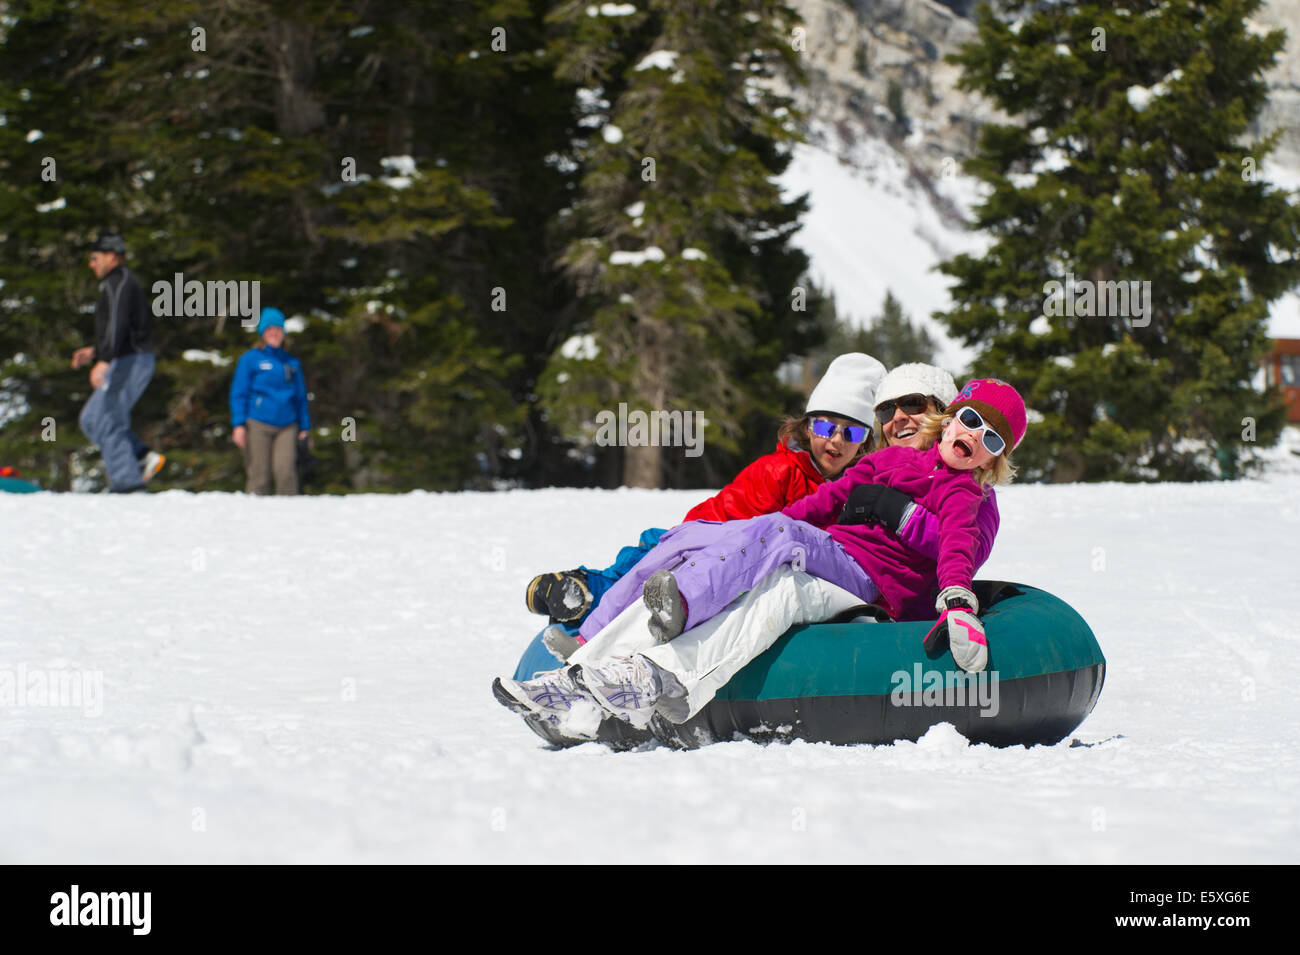 Julien, Suzanne and Lucy Weiss enjoy tubing at Snowbird Resort in Utah. - Stock Image